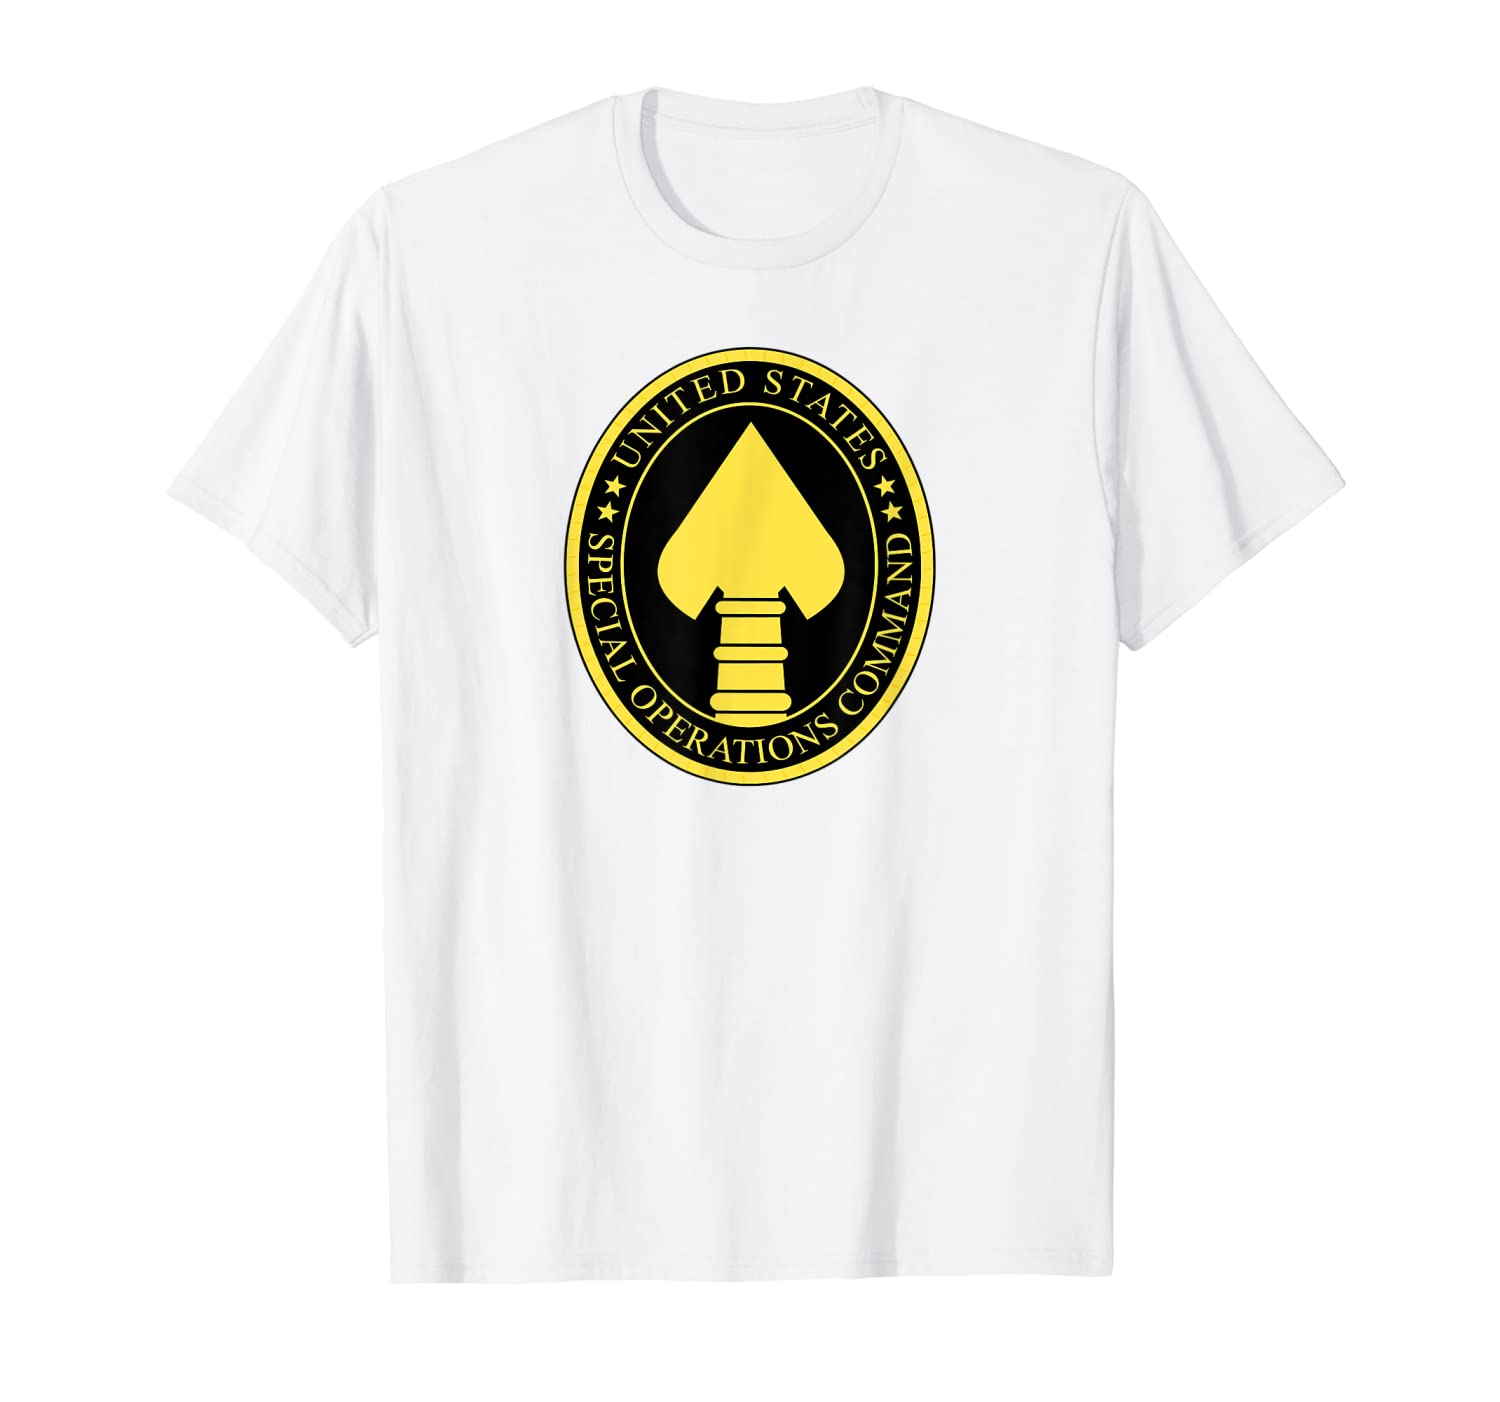 Special Operations Command (SOCOM) T-Shirt | KnowSharp- Cool